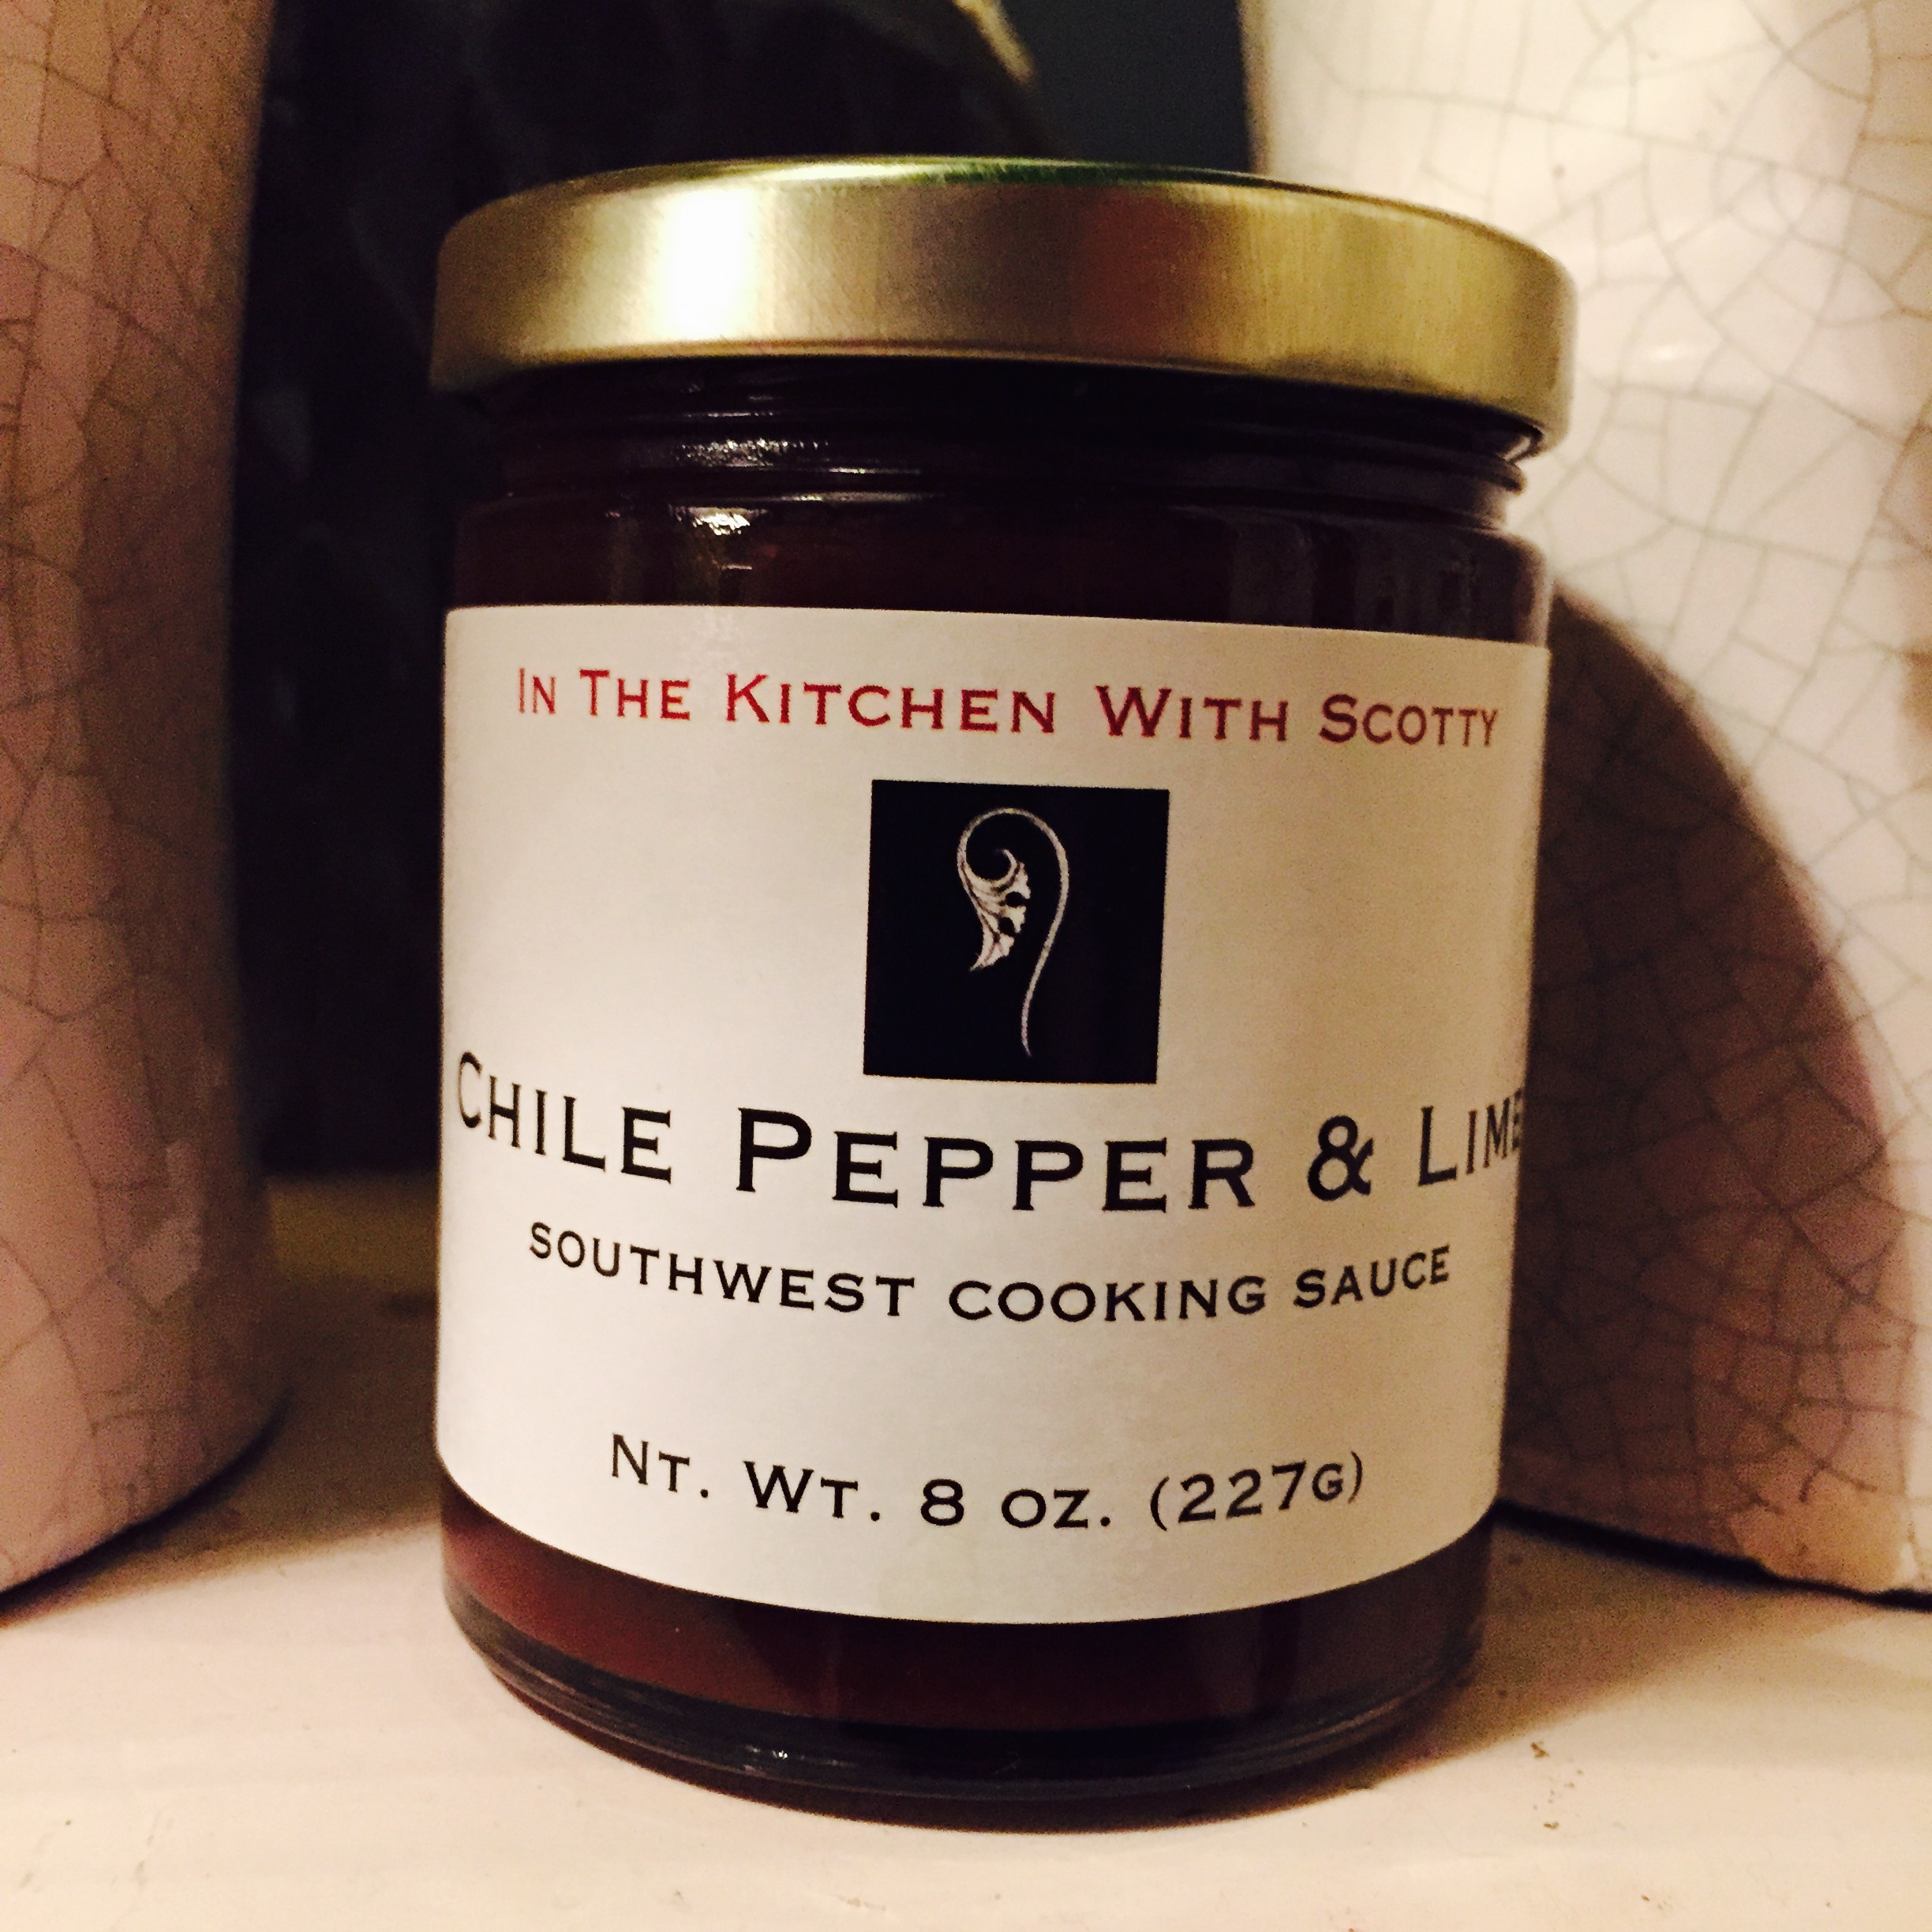 My Chile Pepper & Lime Southwest Cooking Sauce